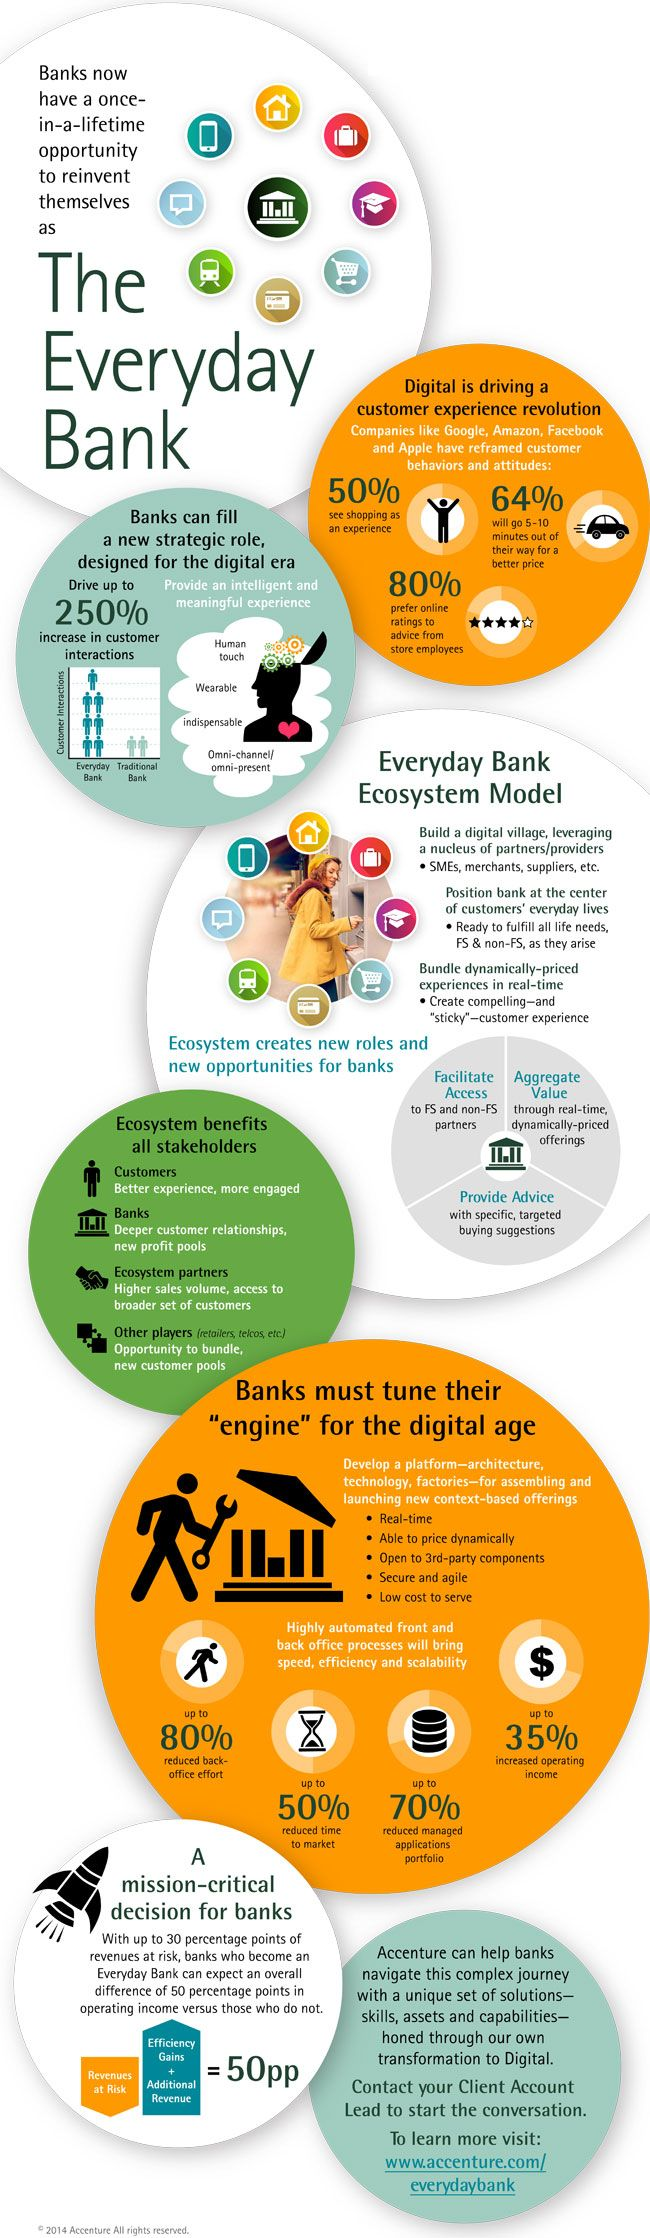 150 best banking images on pinterest finance innovation and the everyday digital bankaccenture infographic malvernweather